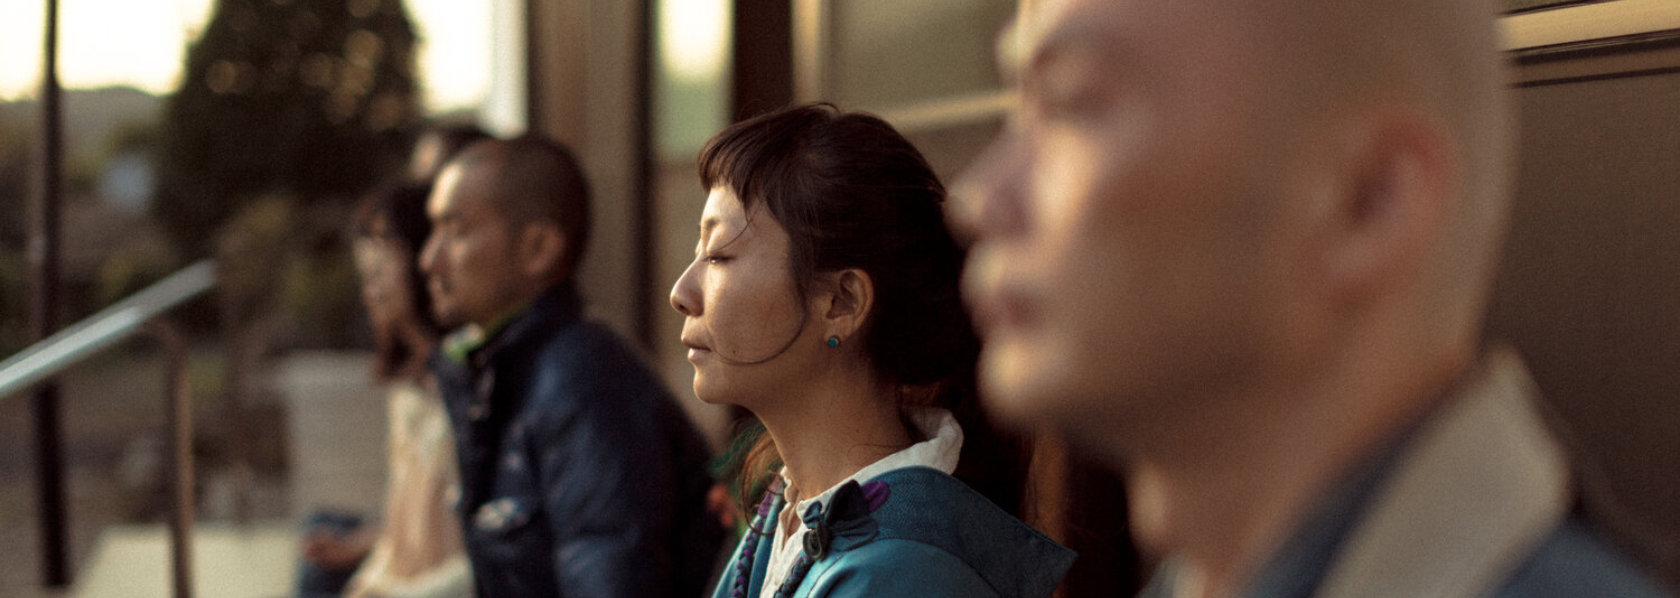 People meditating outside a house - My Soul Drifts Light Upon a Sea of Trees - THIS Buddhist Film Festival